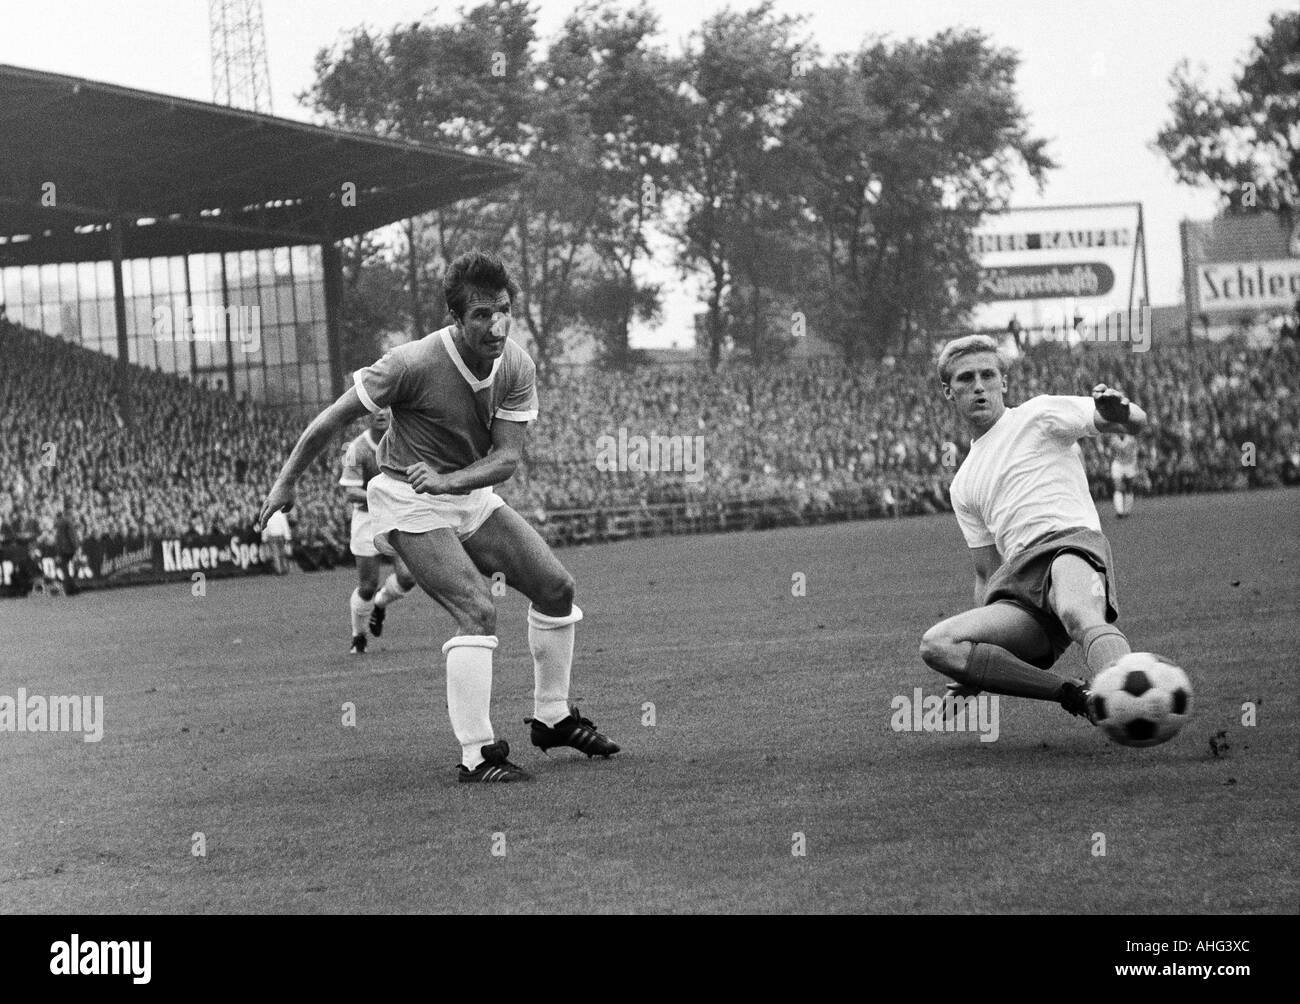 football, Bundesliga, 1967/1968, Glueckaufkampfbahn Stadium, Schalke 04 versus TSV 1860 Munich 0:0, scene of the match, Rudolf Brunnenmeier (1860) passing, right Klaus Fichtel (Schalke) - Stock Image